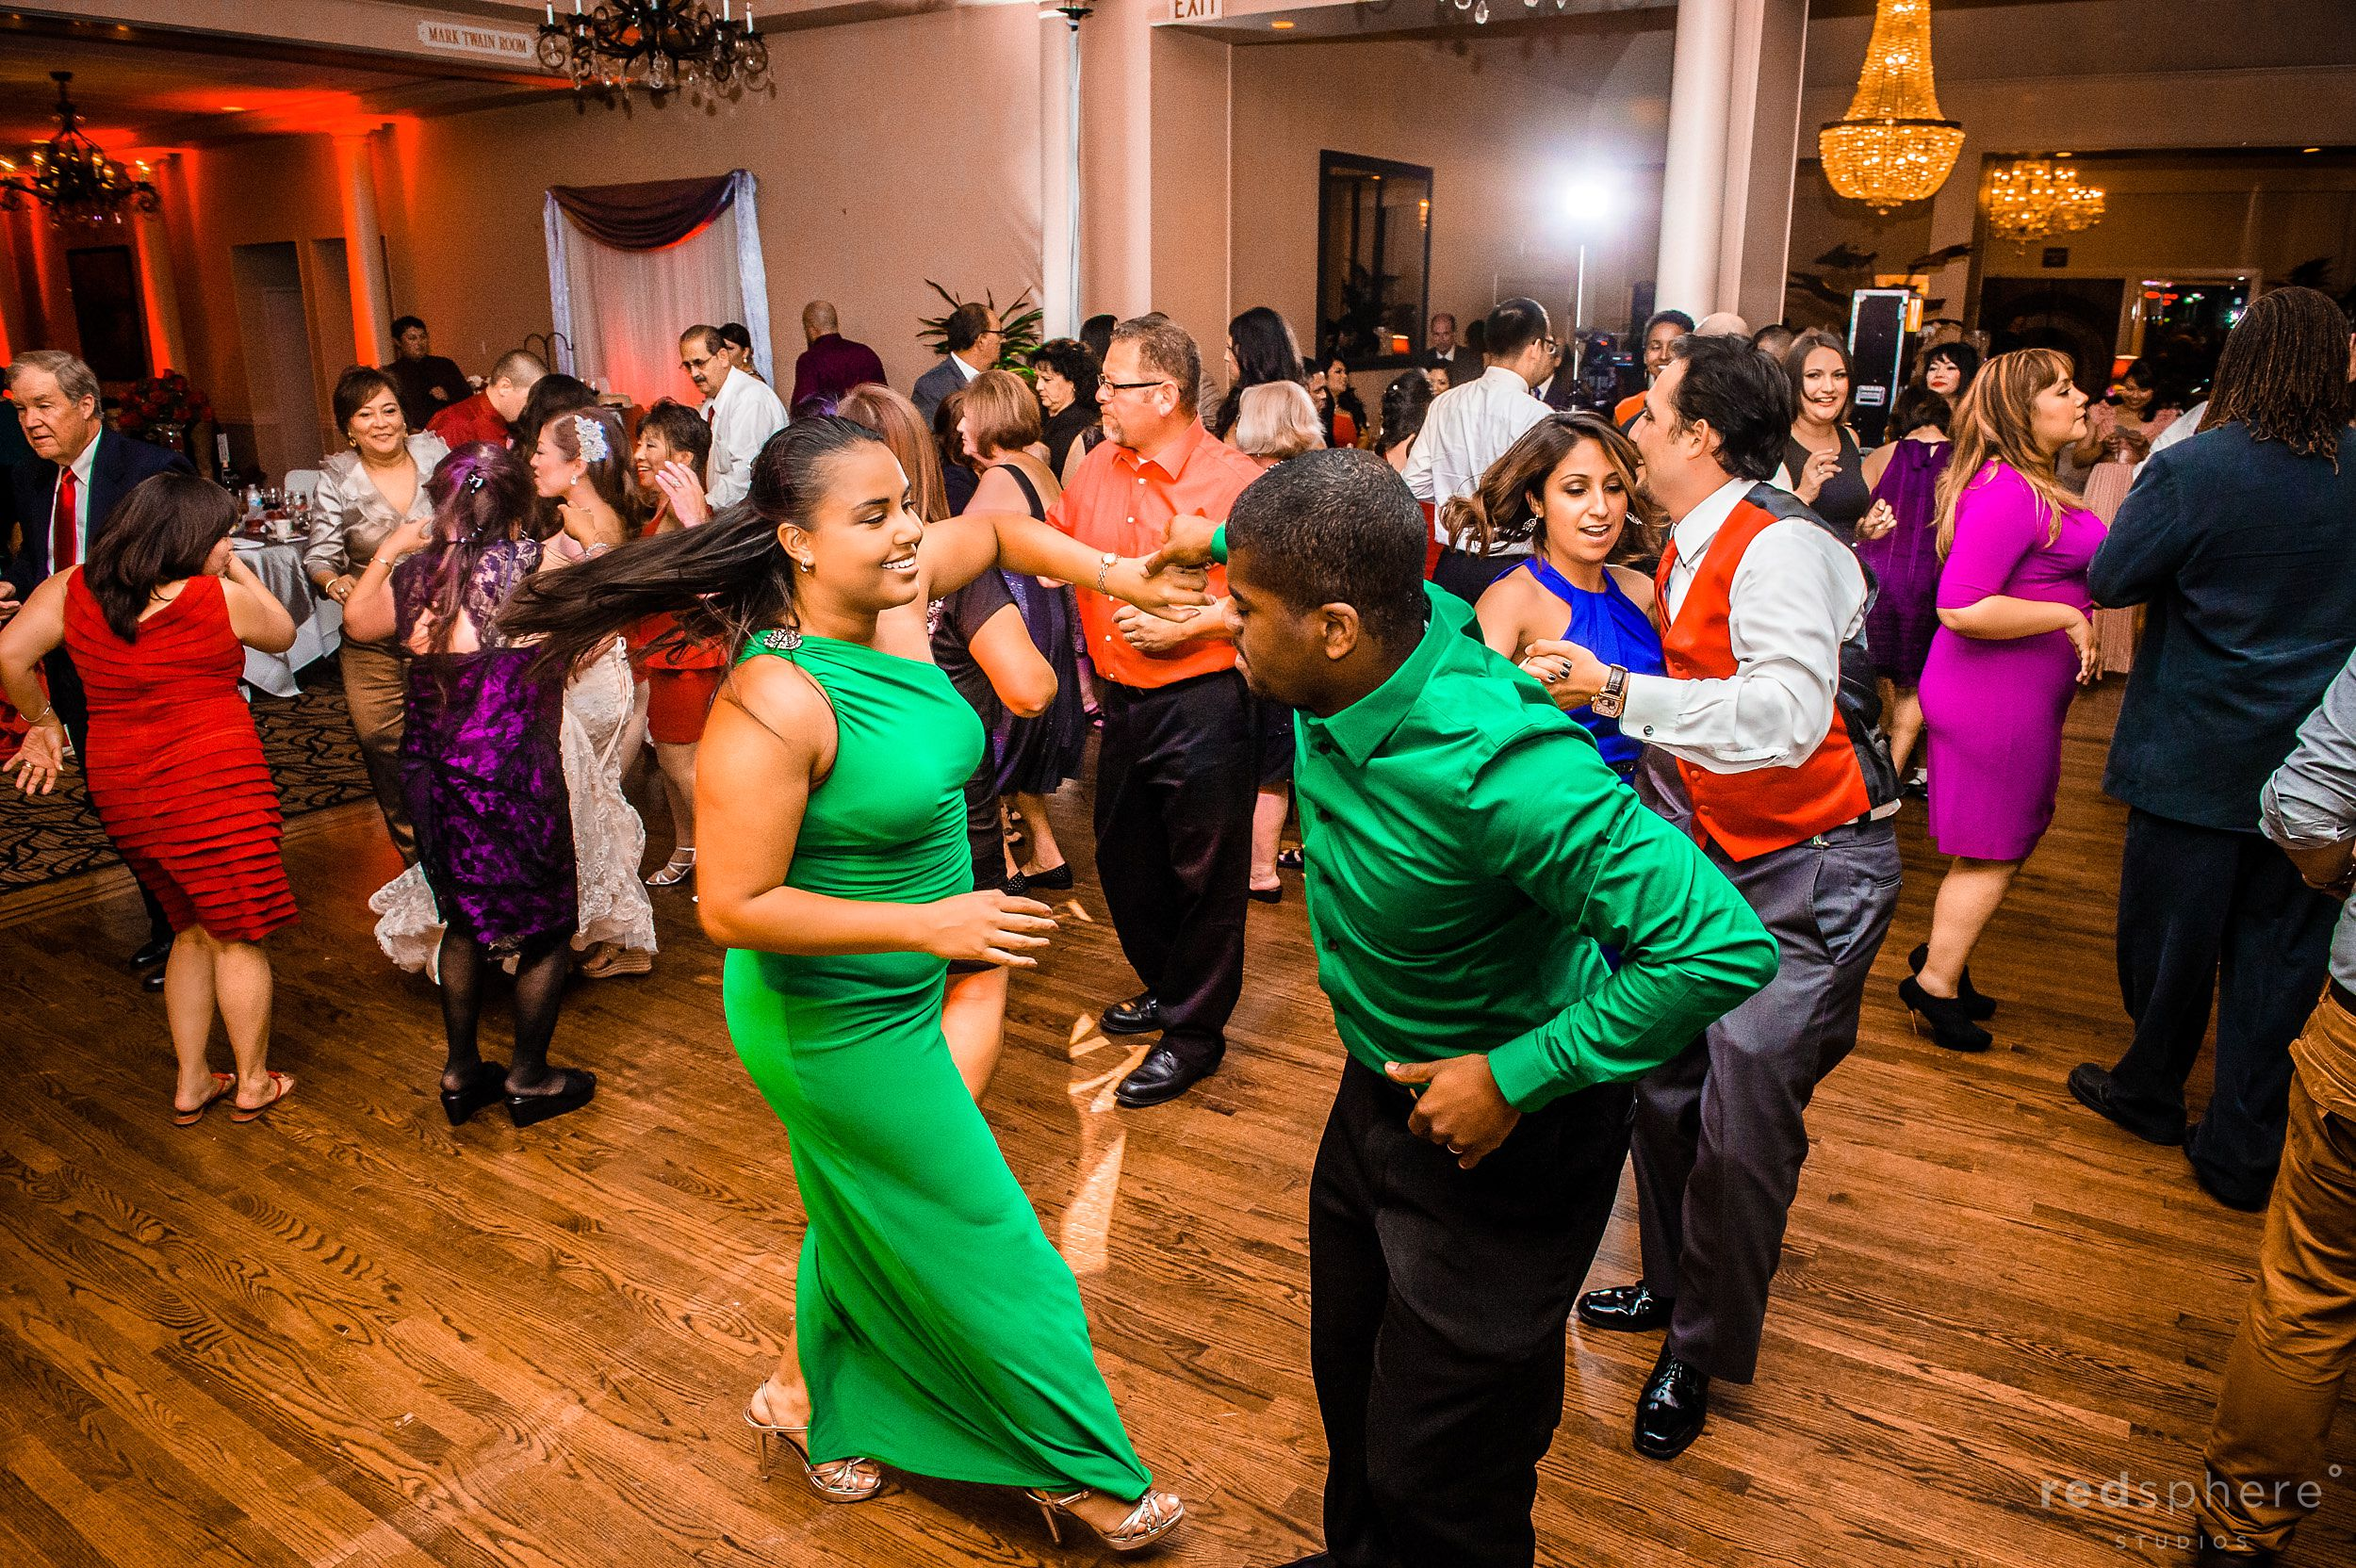 Guests in Green Dancing On The Dance Floor at Crow Canyon Country Club, Danville, CA Wedding Reception